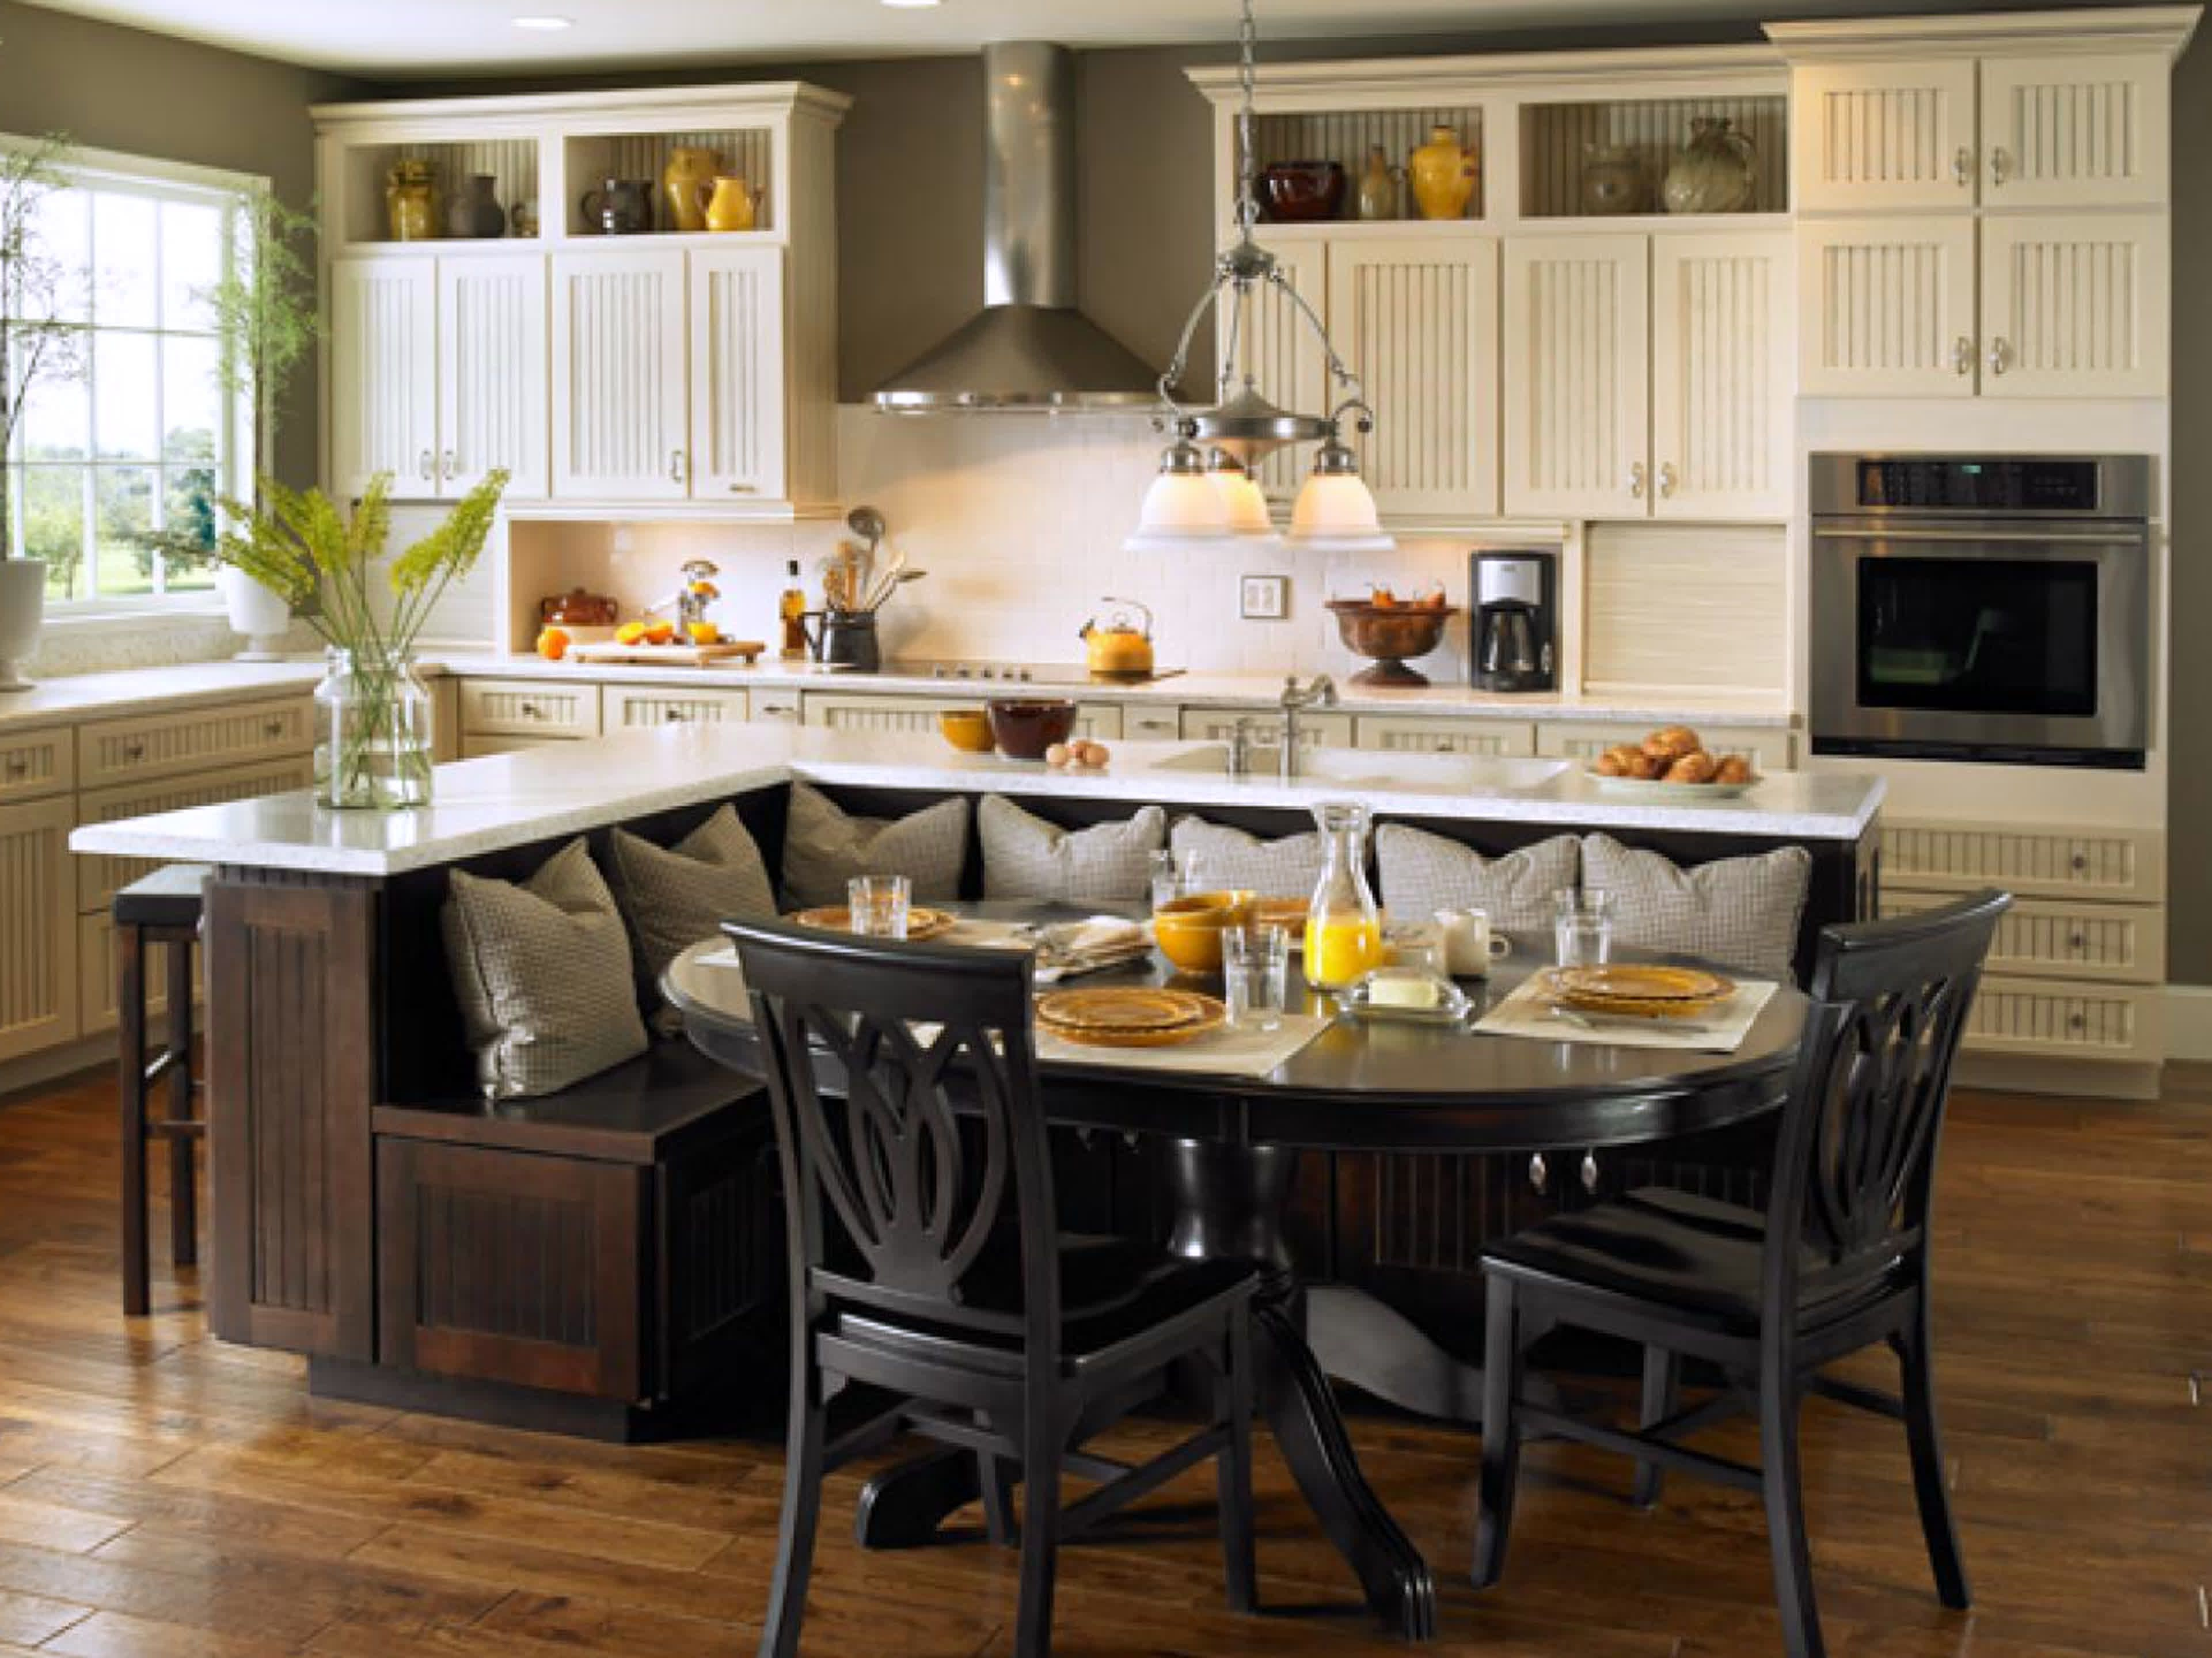 Related Image In 2019 Kitchen Island Built Seating